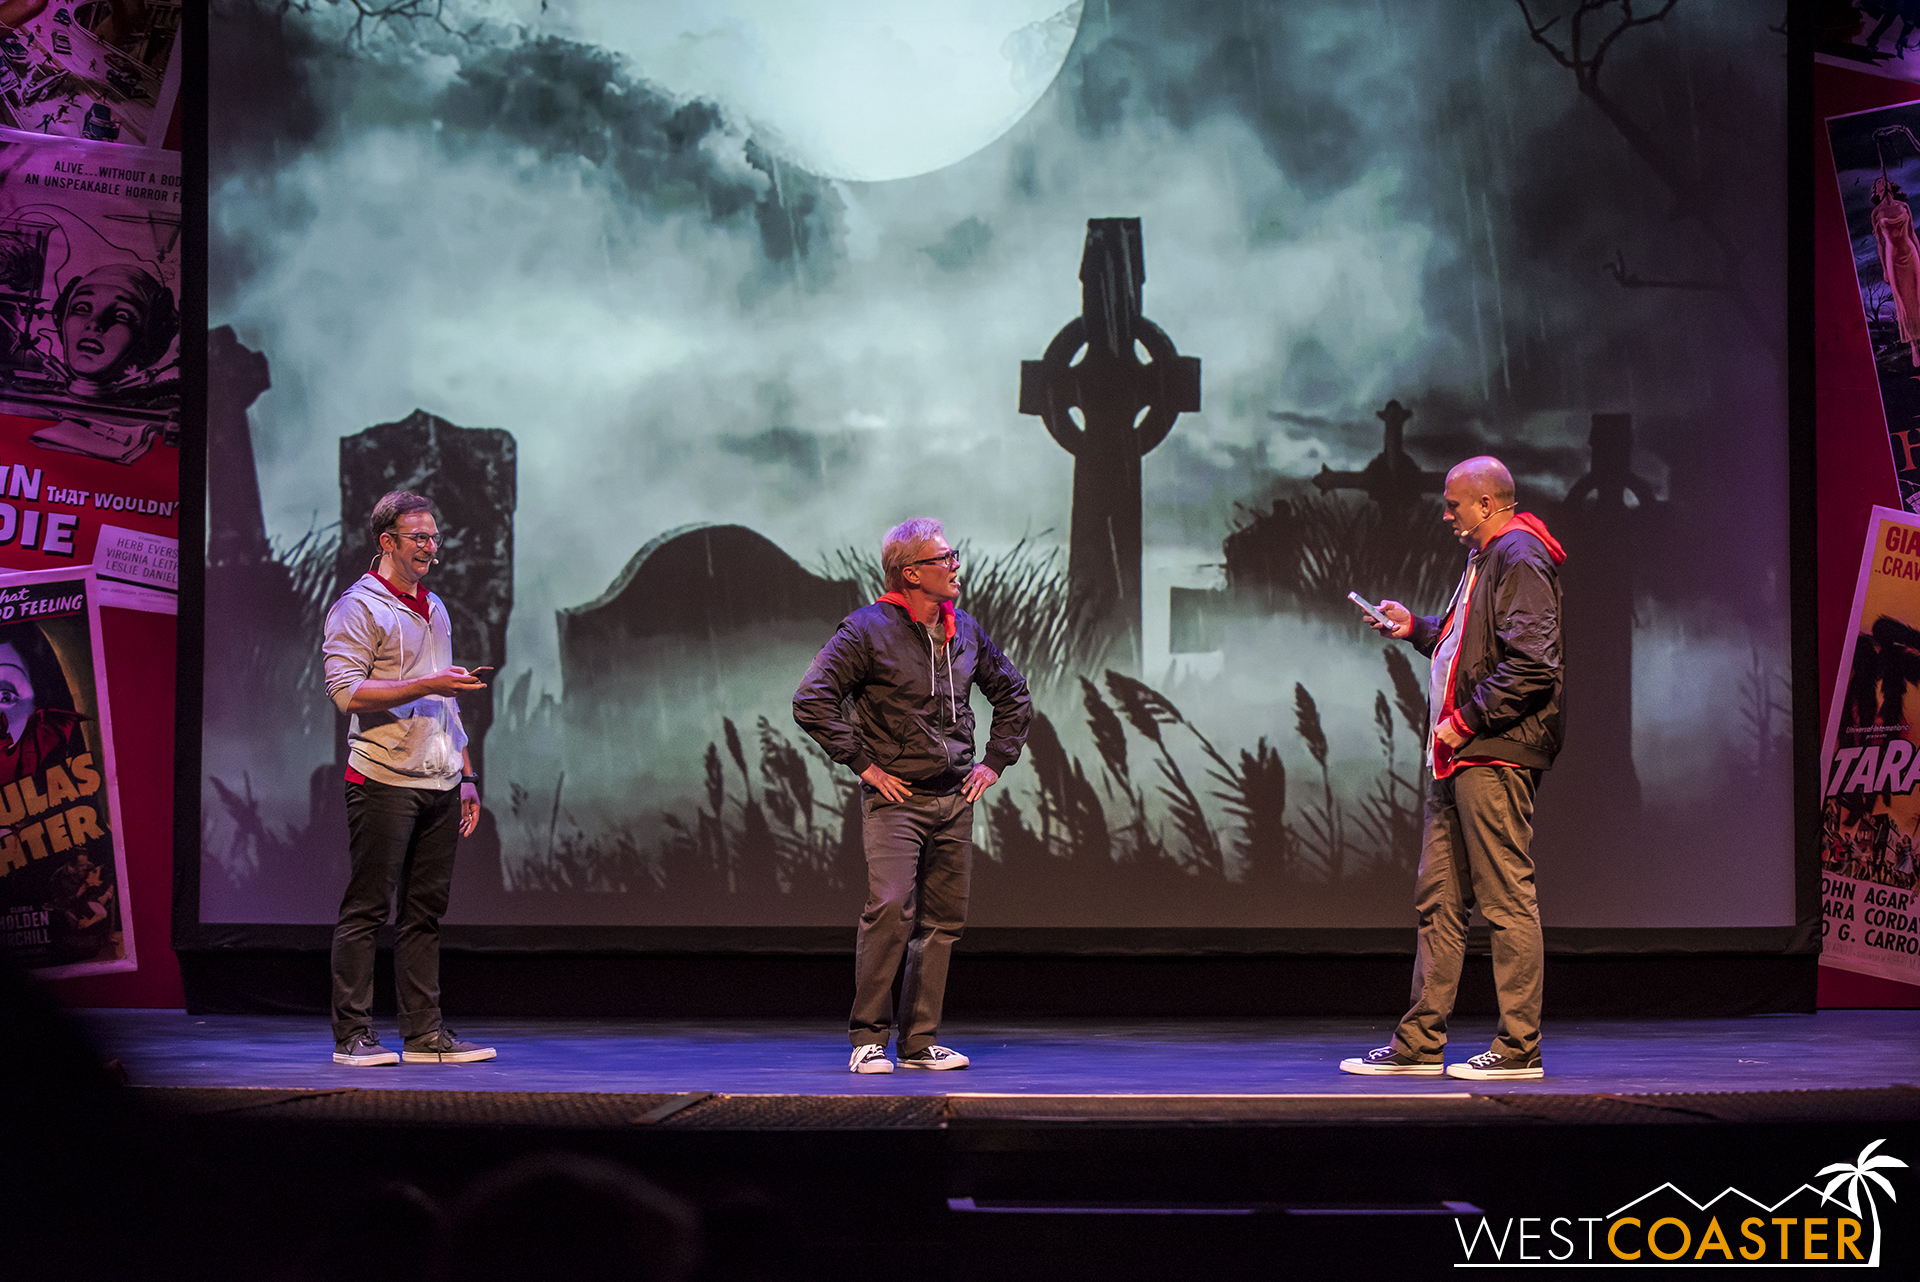 In the final game of this particular show, the actors took part in a graveyard scene but inserted lines from text messages borrowed from audience members.